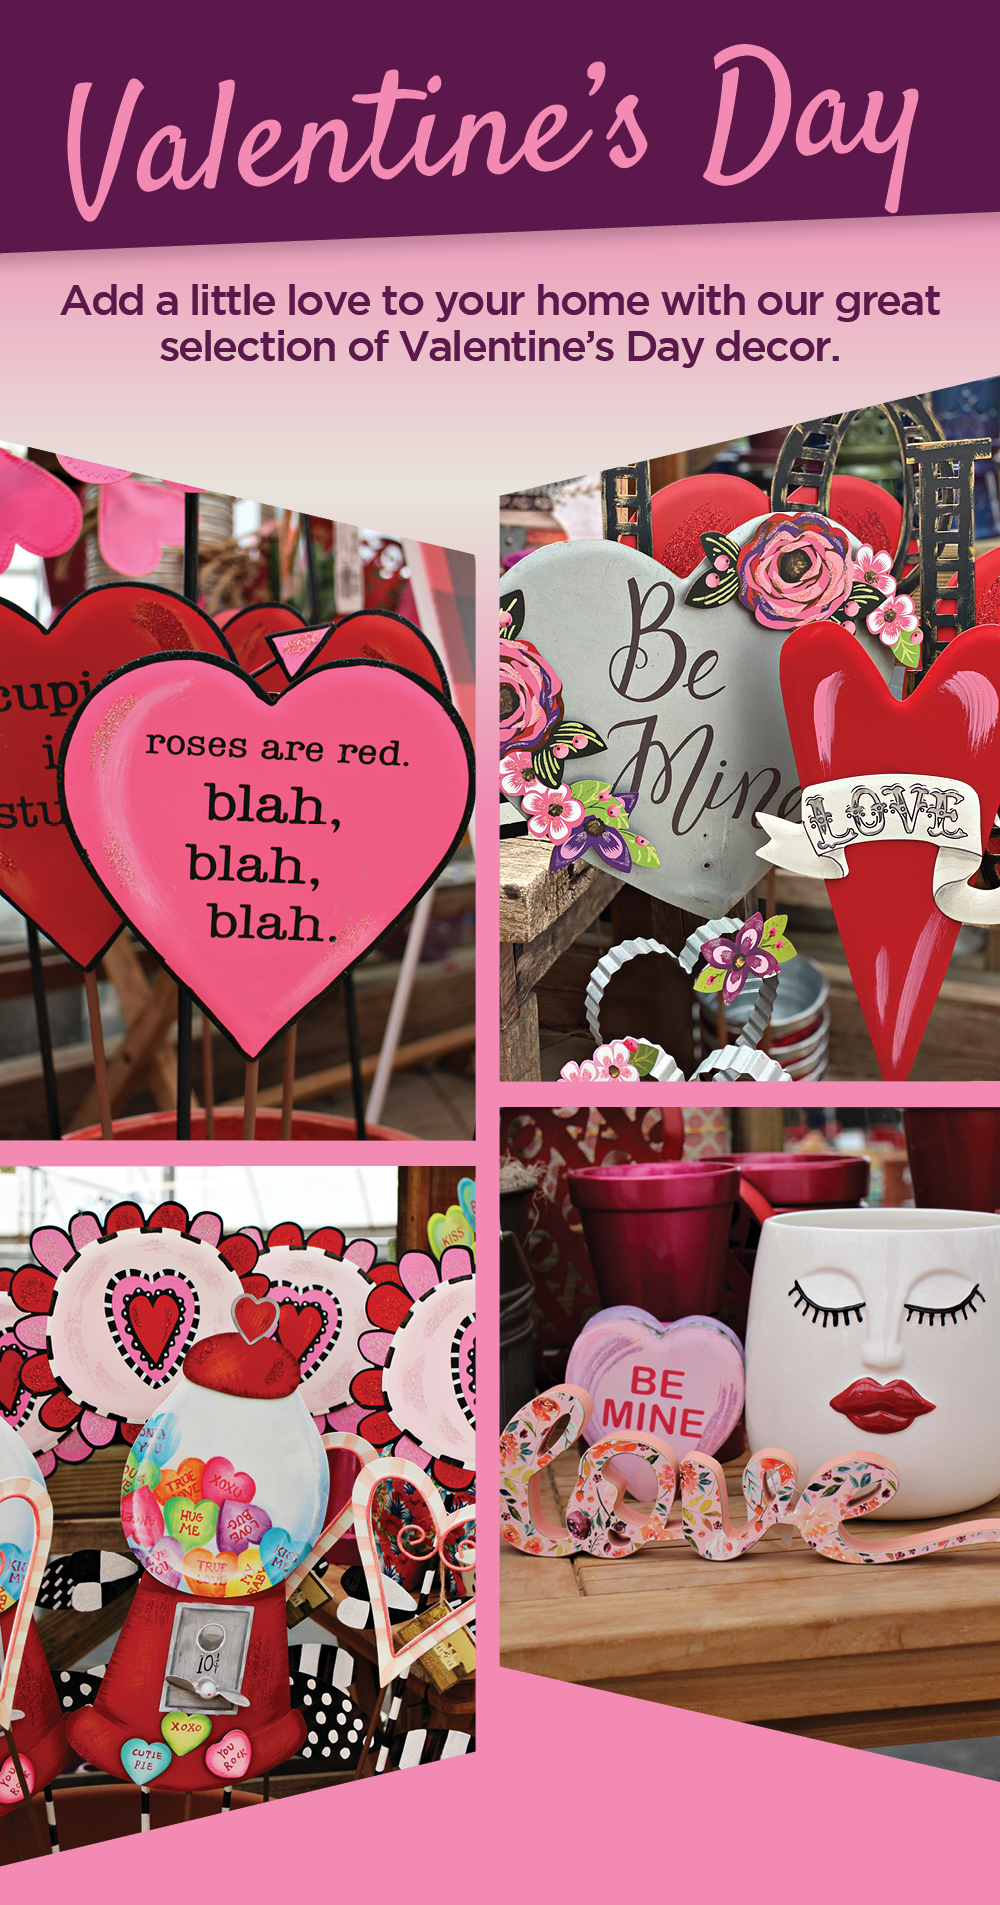 Valentine's Day Decor | TLC Garden Centers